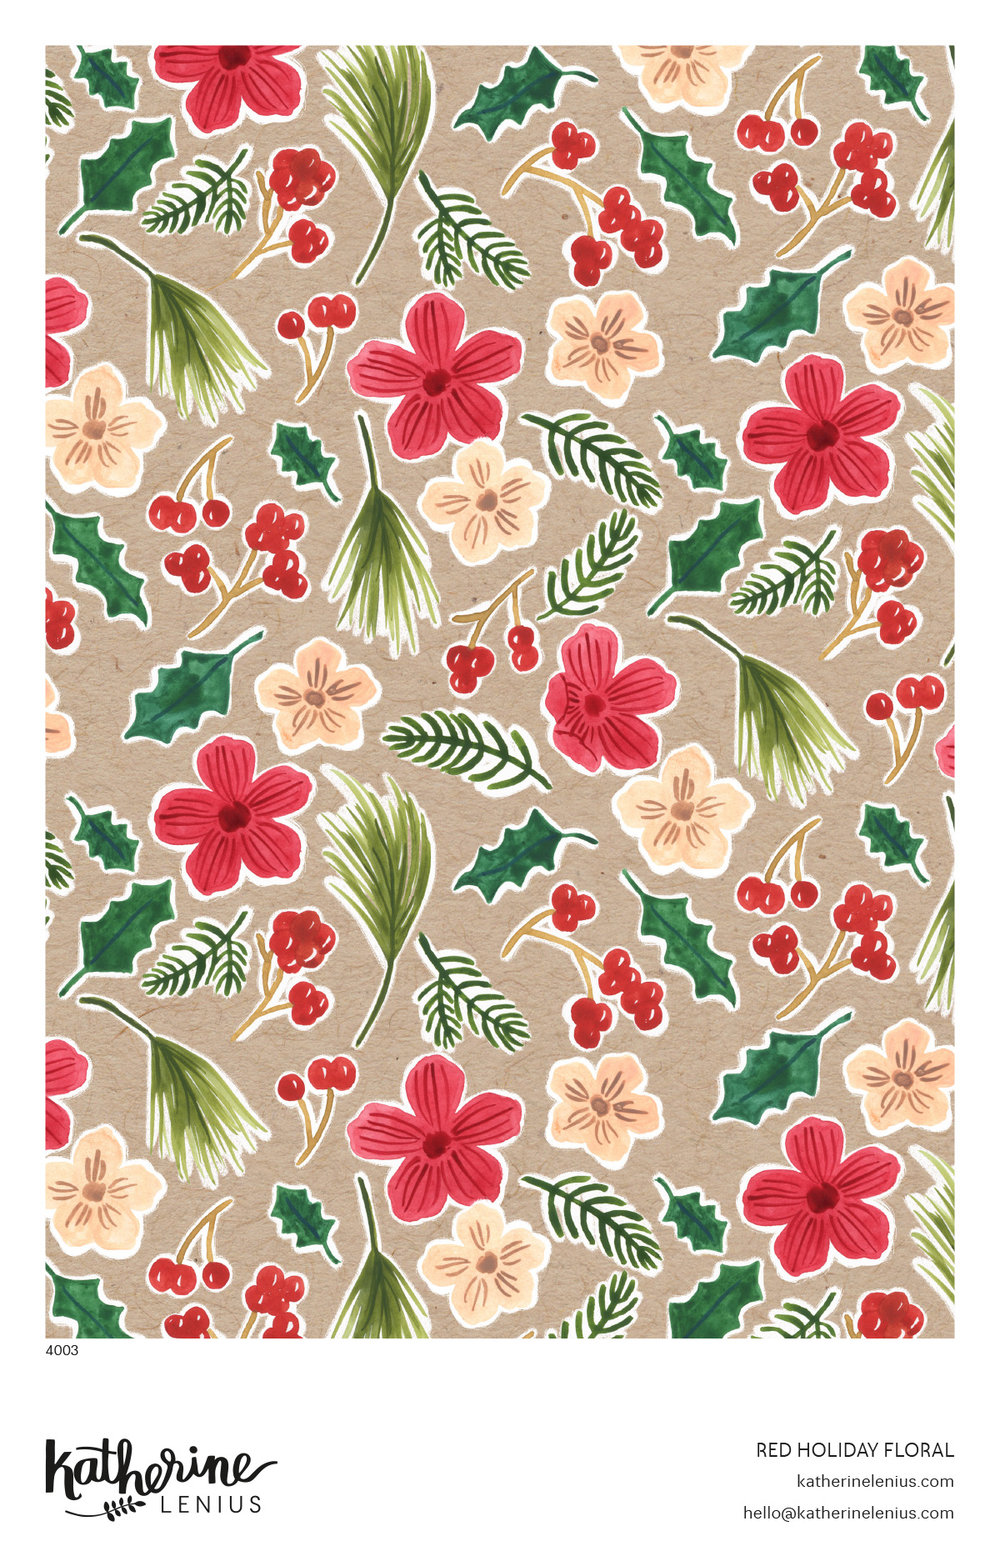 KL_4003_Red Holiday Floral copy.jpg